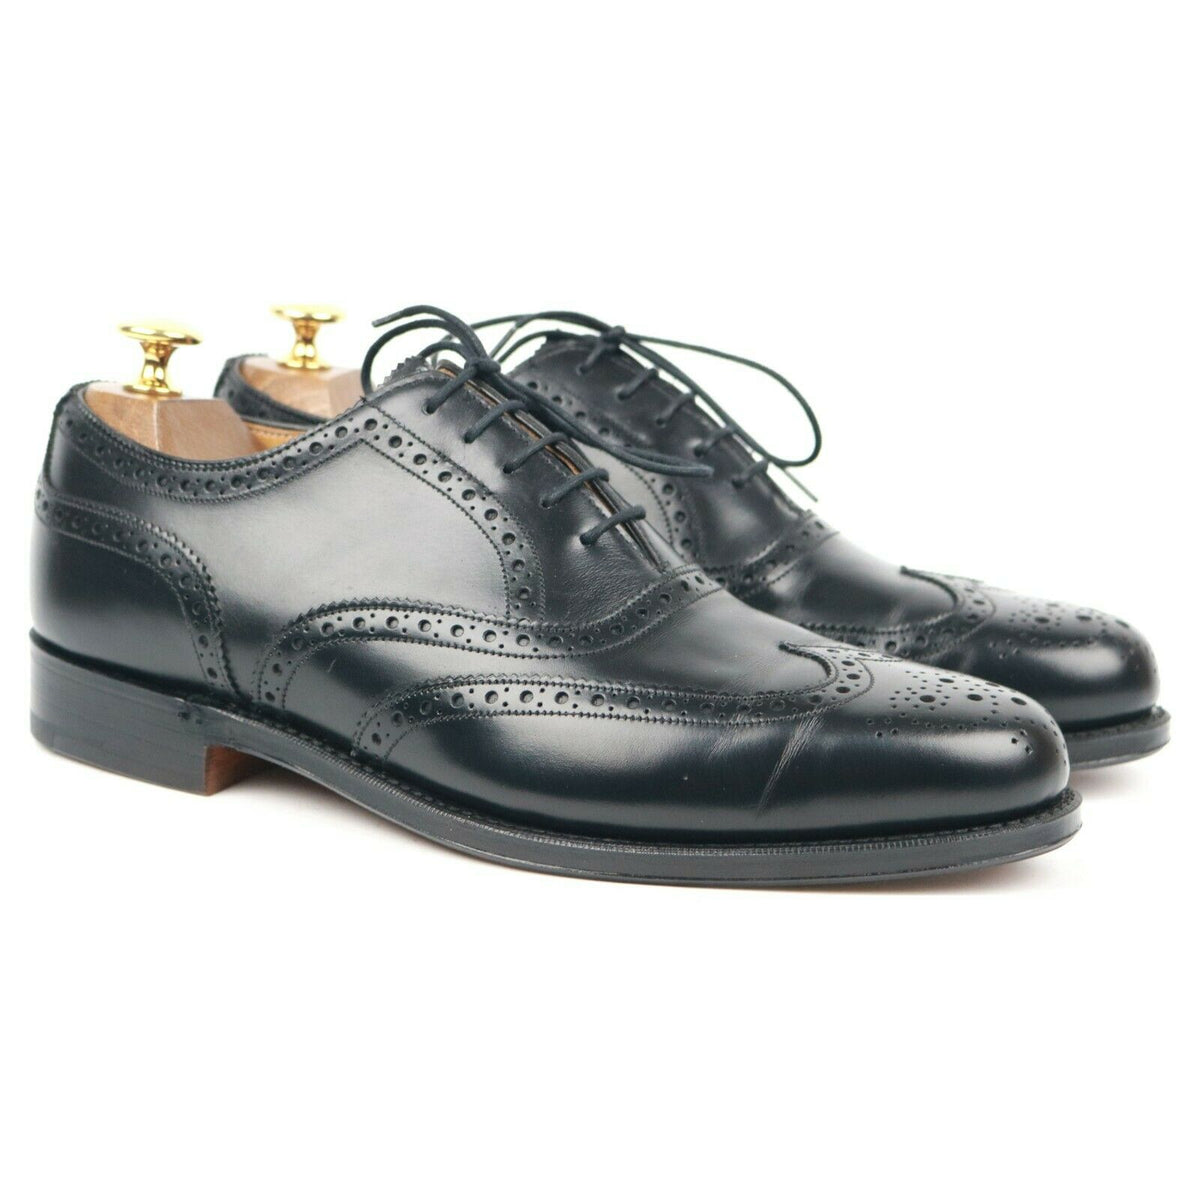 Cheaney 'Willesborough' Black Leather Brogues UK 7 E